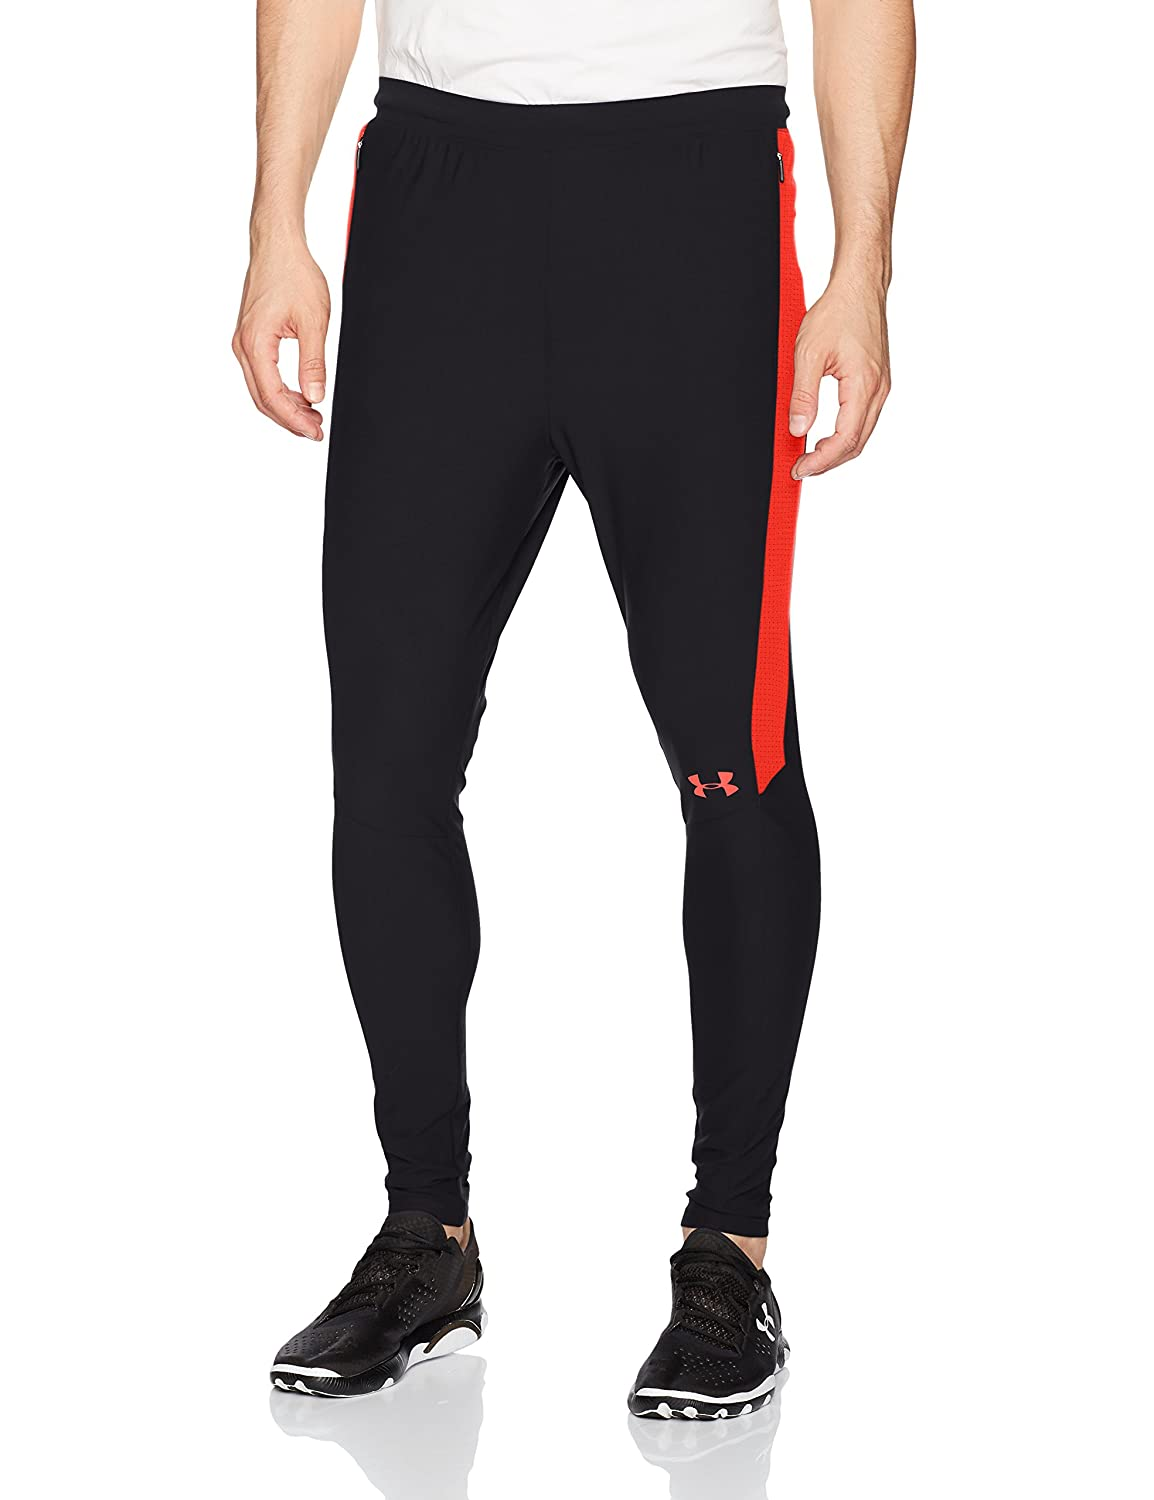 016 //Neon Coral Under Armour Mens Threadborne Pitch Pants,Anthracite Large